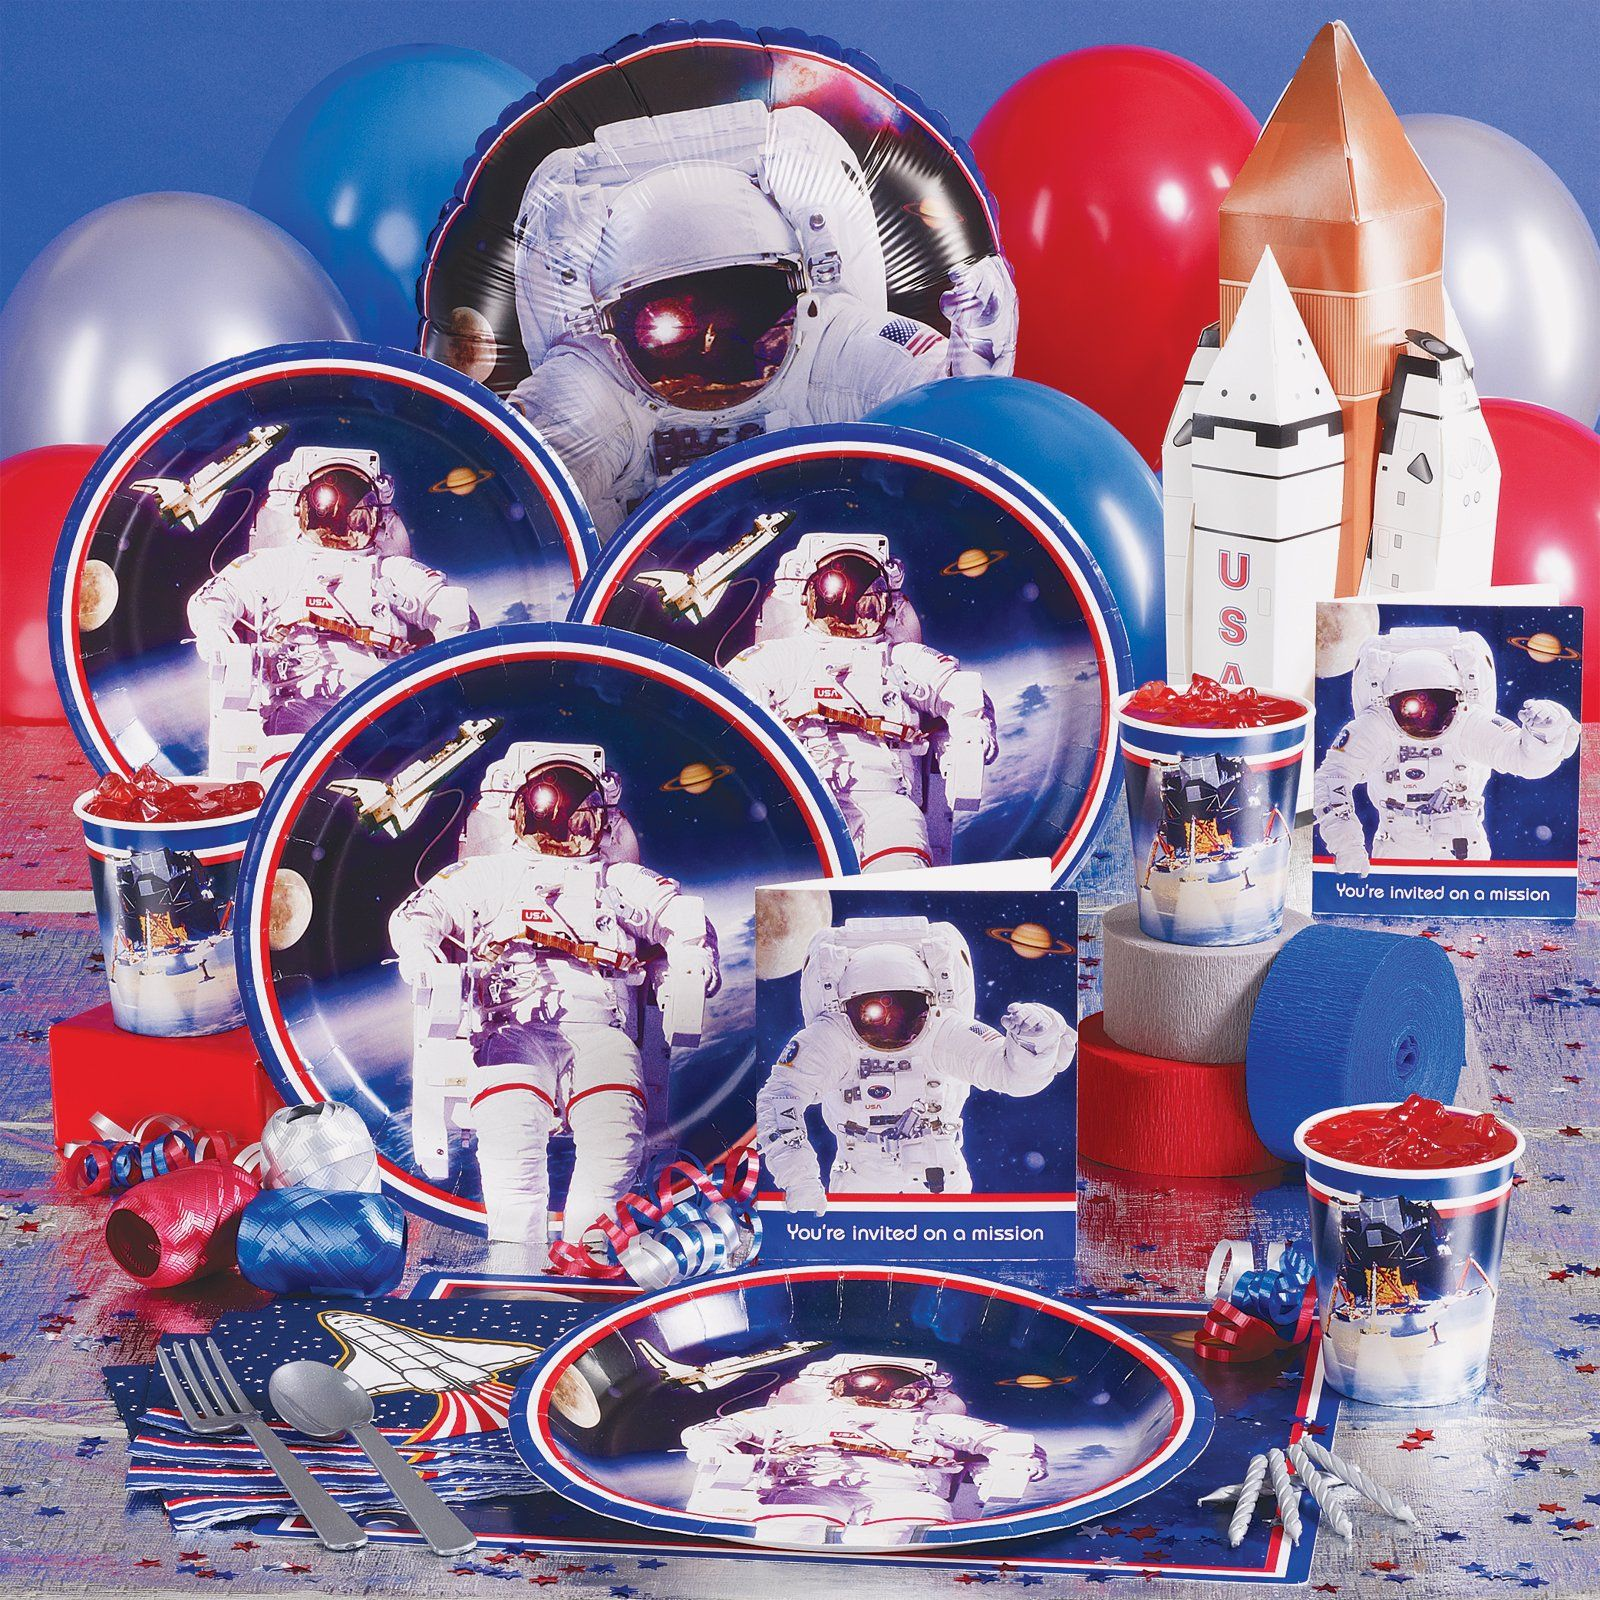 astronaut birthday party ideas - photo #24